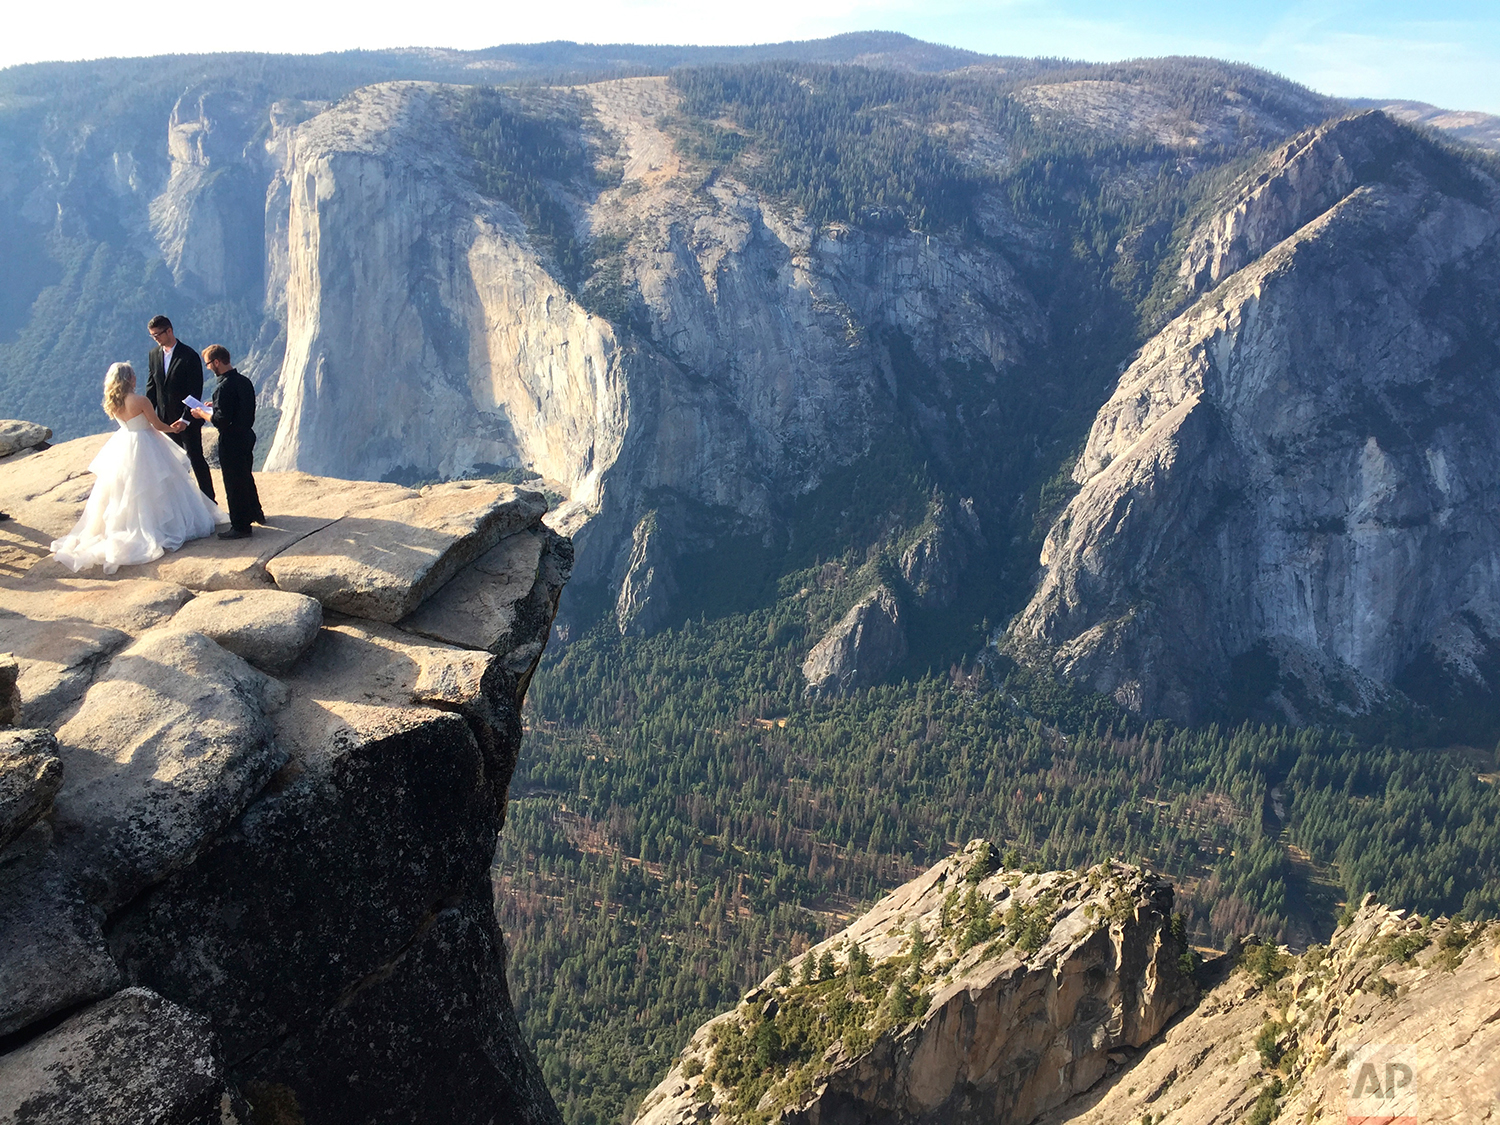 A couple gets married at Taft Point in California's Yosemite National Park on Thursday, Sept. 27, 2018. The viewpoint overlooks Yosemite Valley, including El Capitan, a popular vertical ascent for rock climbers across the globe. (AP Photo/Amanda Lee Myers)